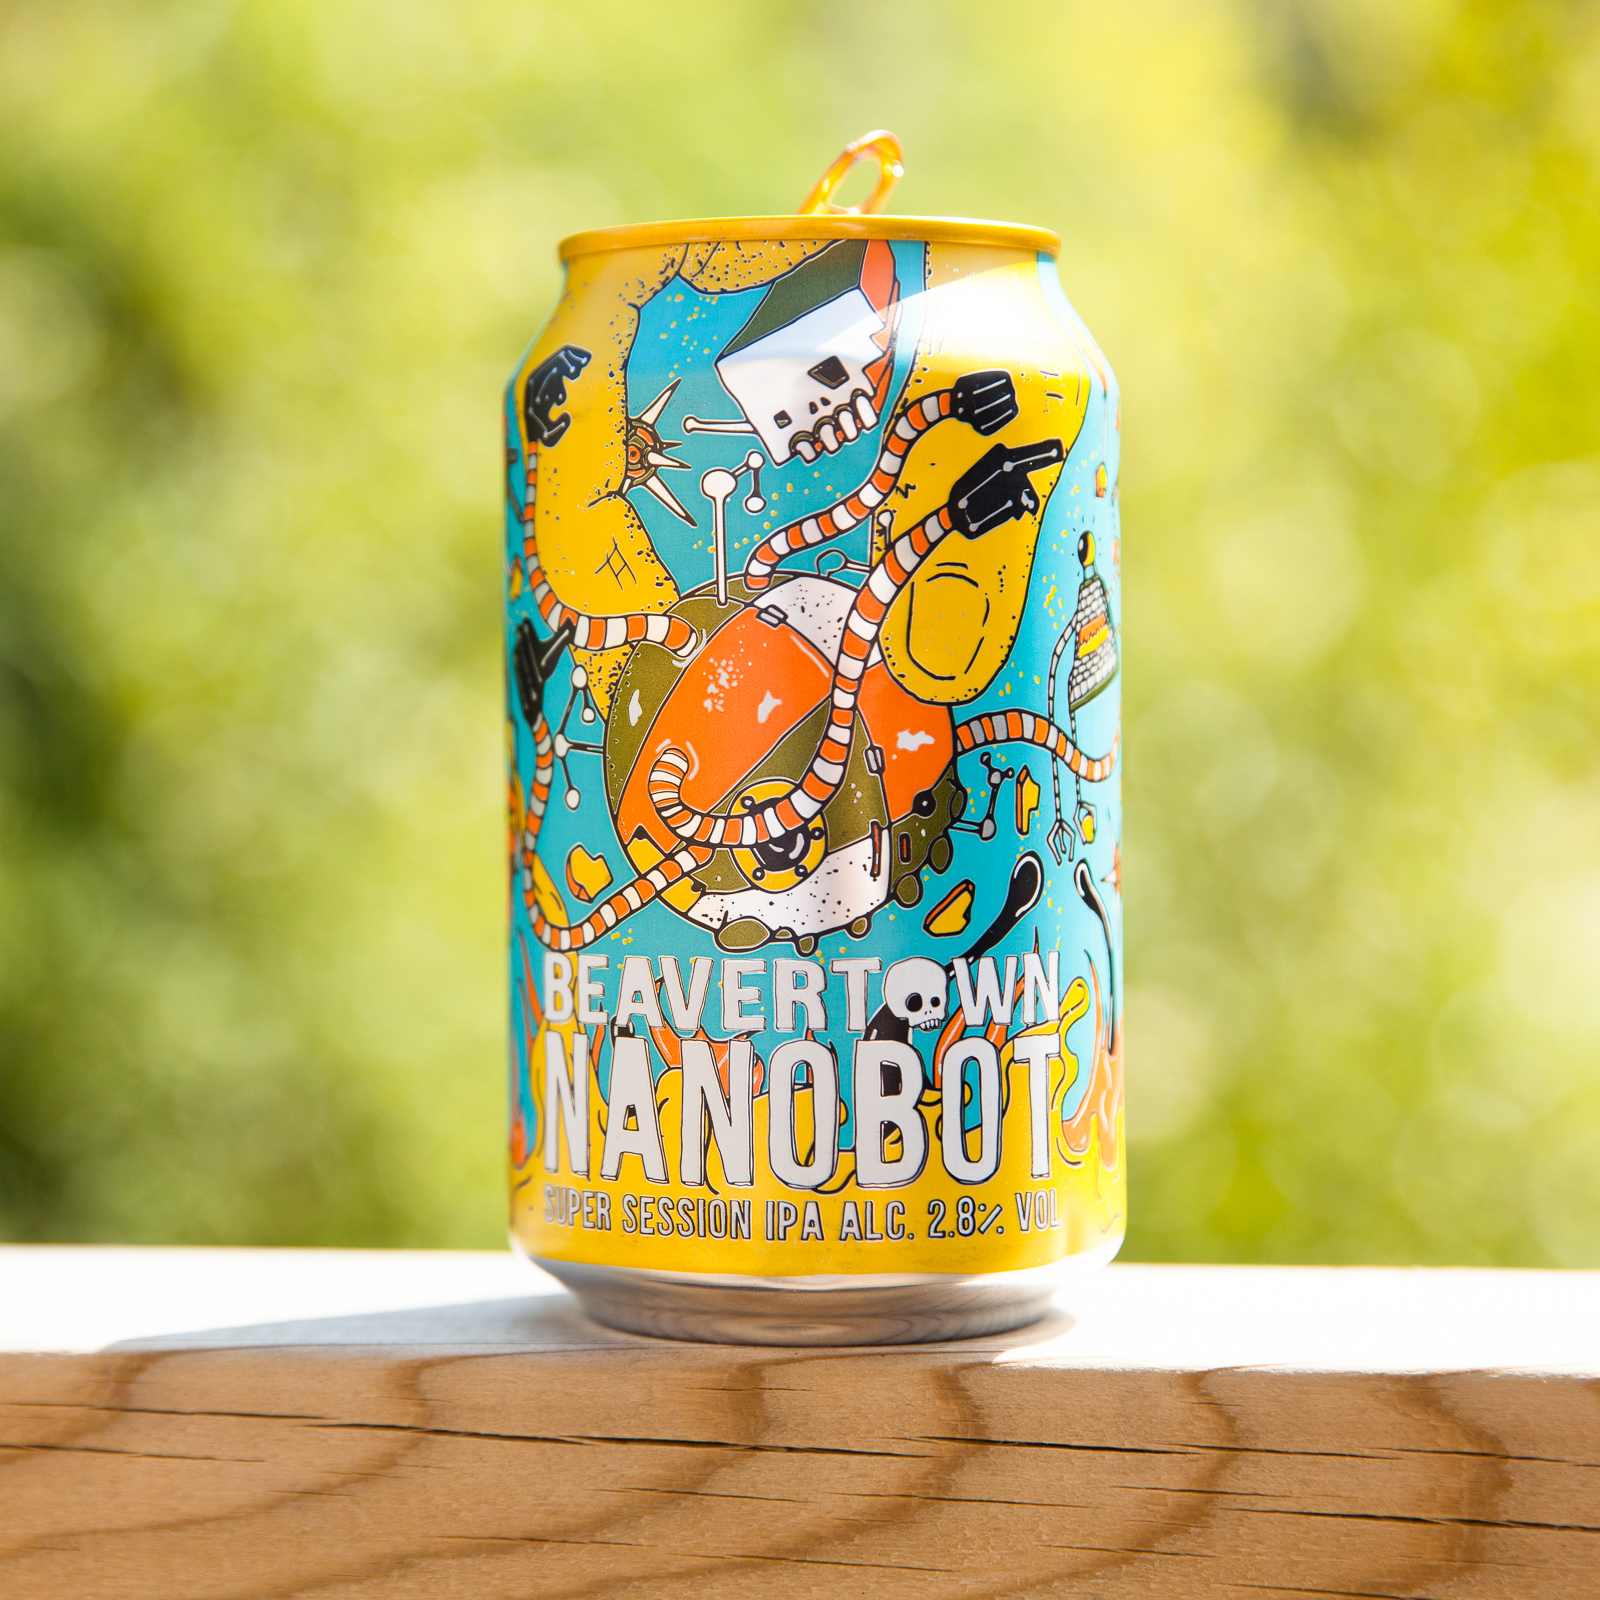 Beavertown Nanobot 4